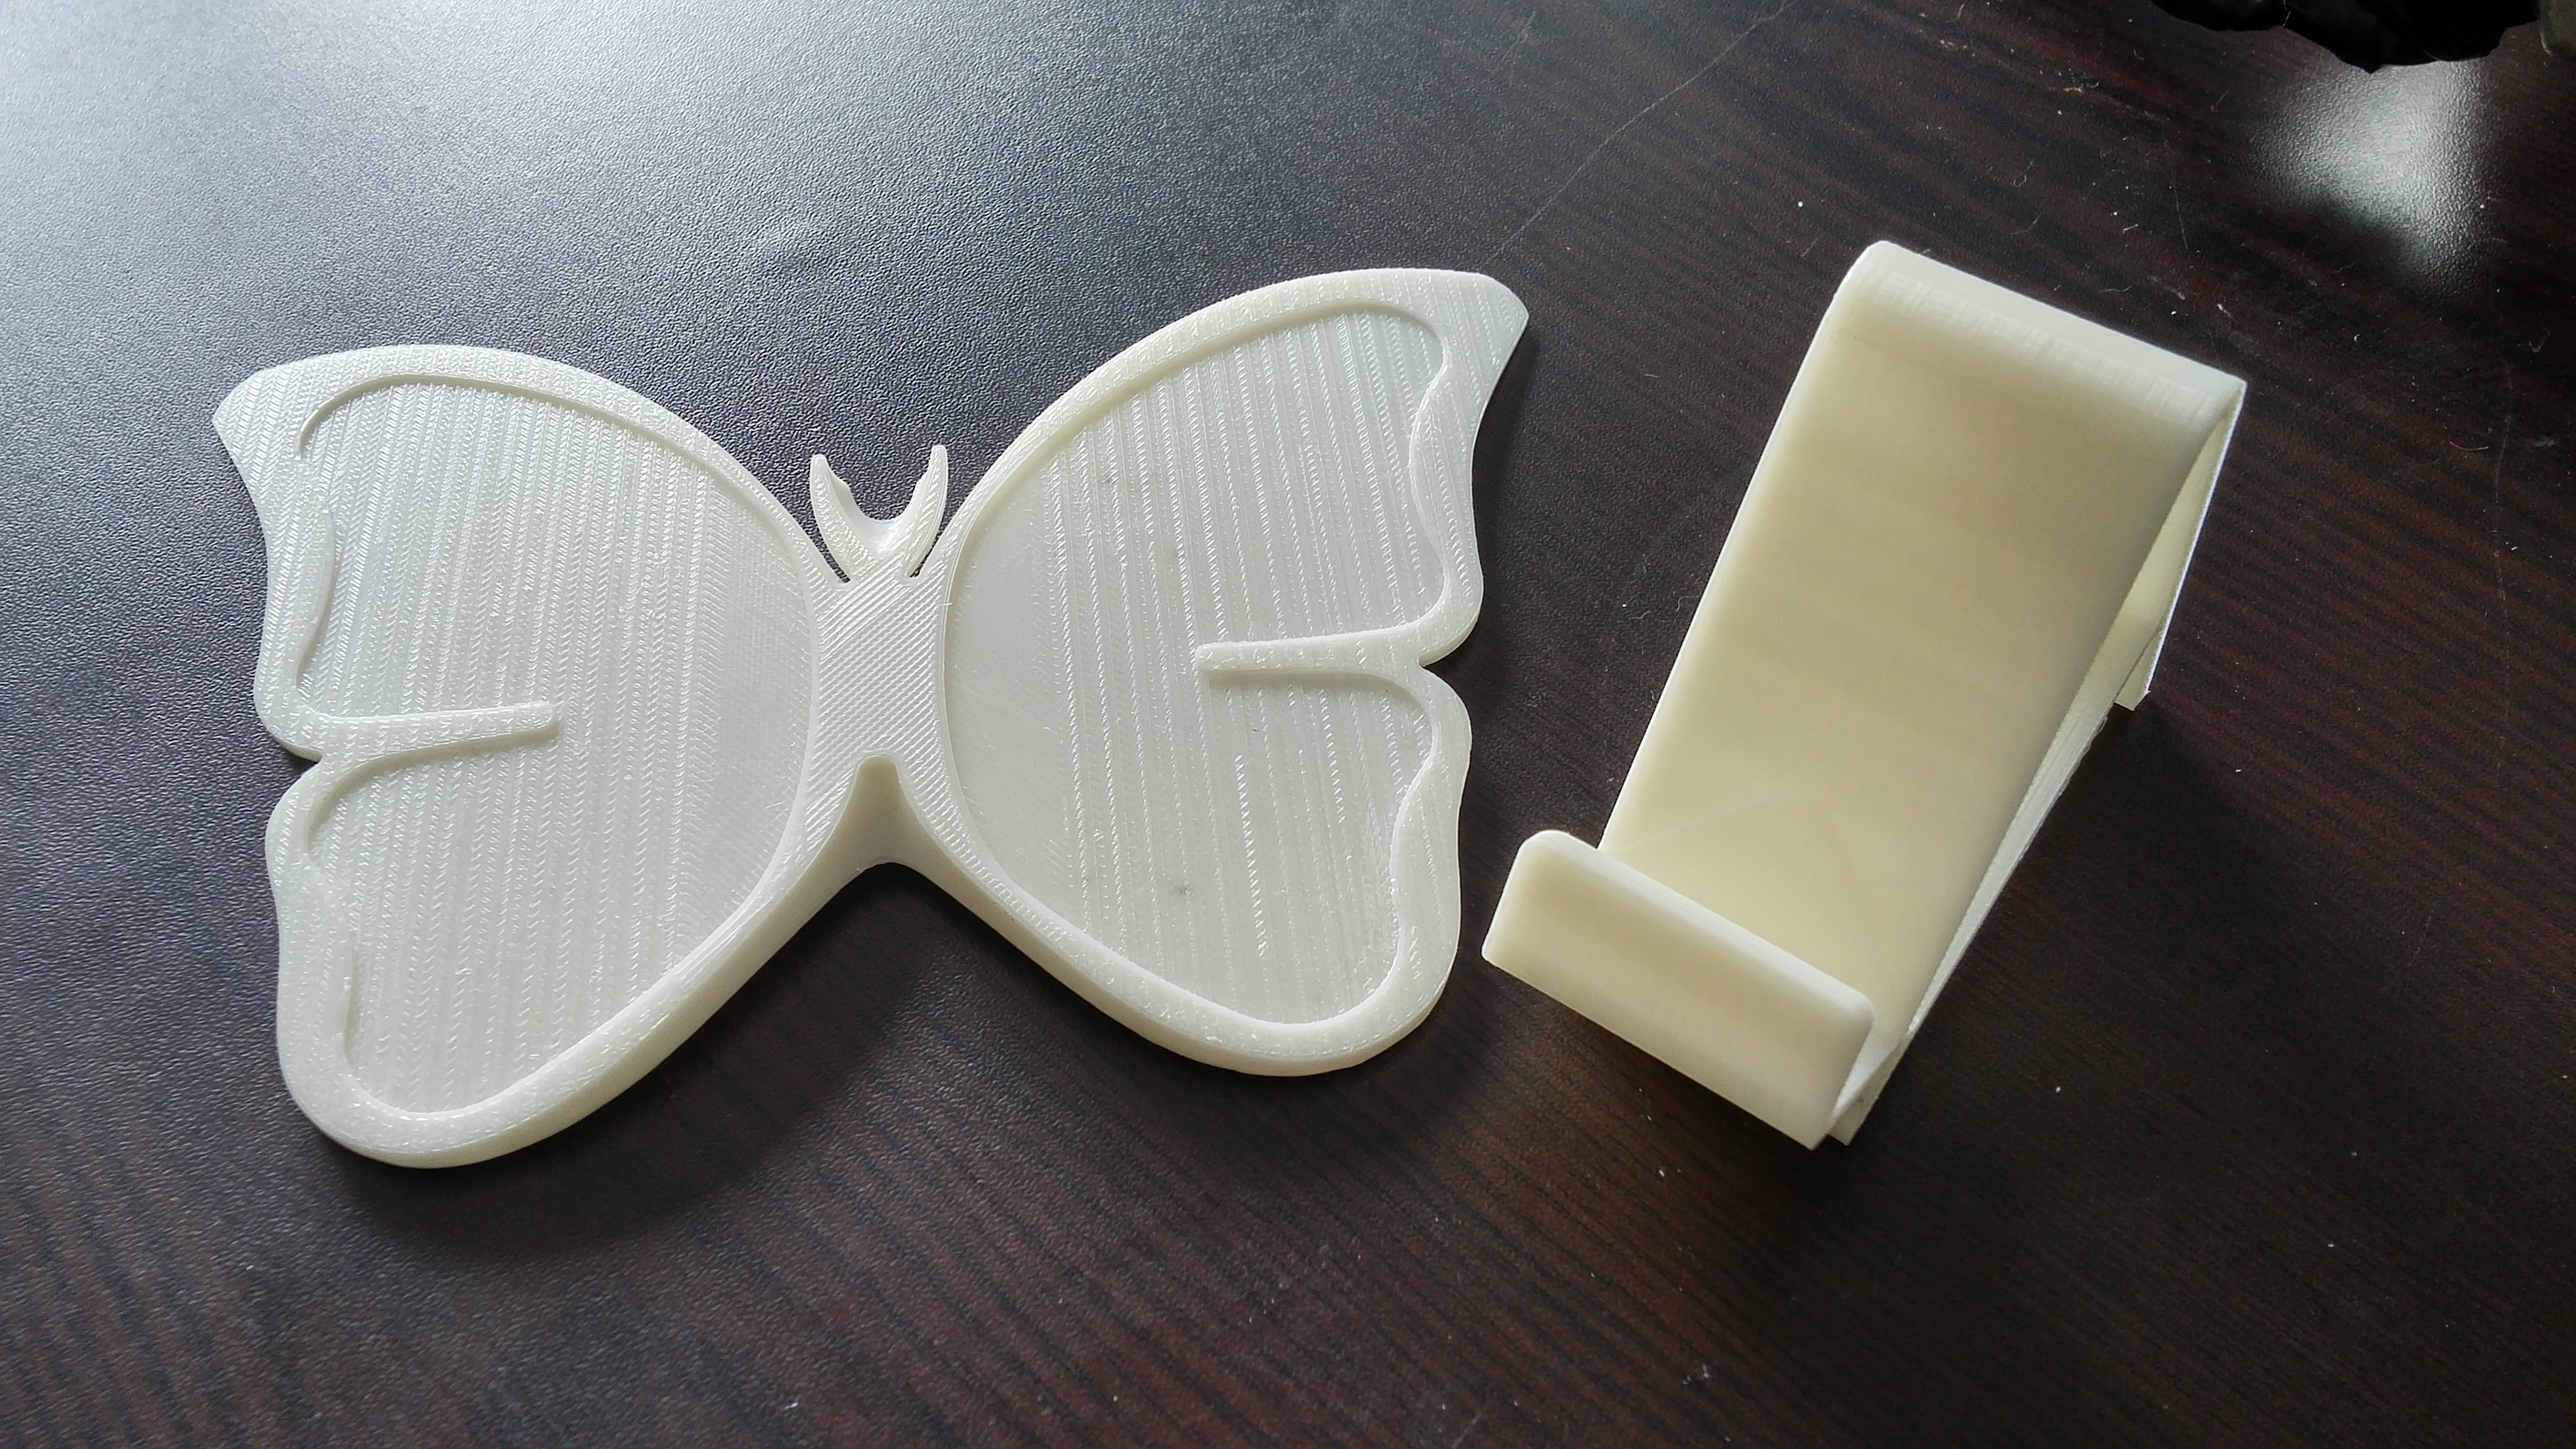 20161122_134640_HDR.jpg Download free STL file butterfly smart phone stand / butterfly name card • 3D printer template, 3D_parts